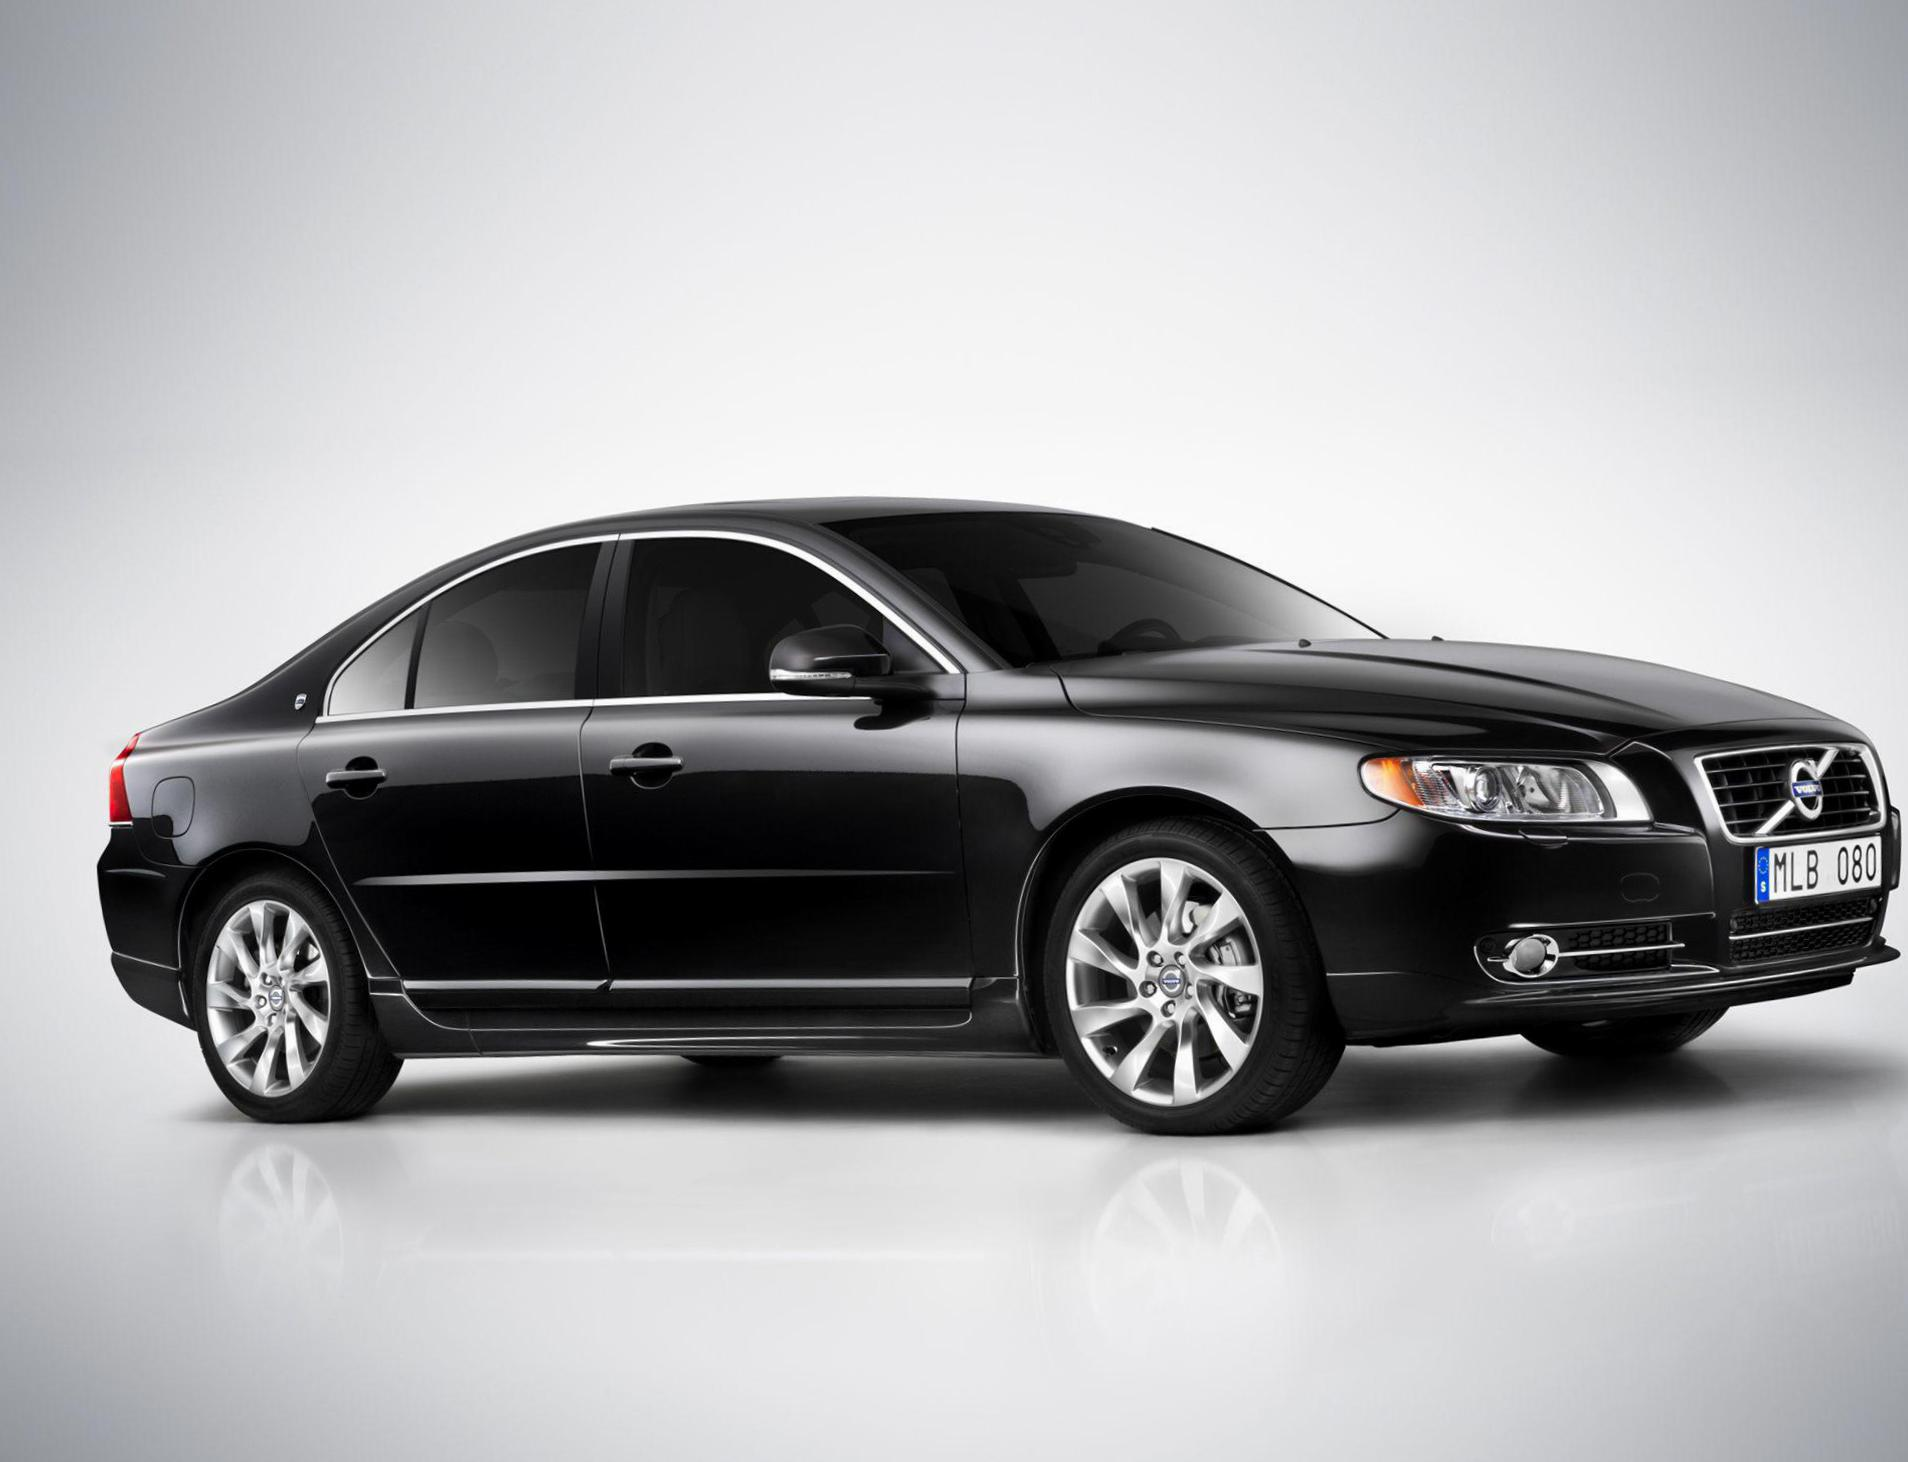 Volvo S80 model hatchback